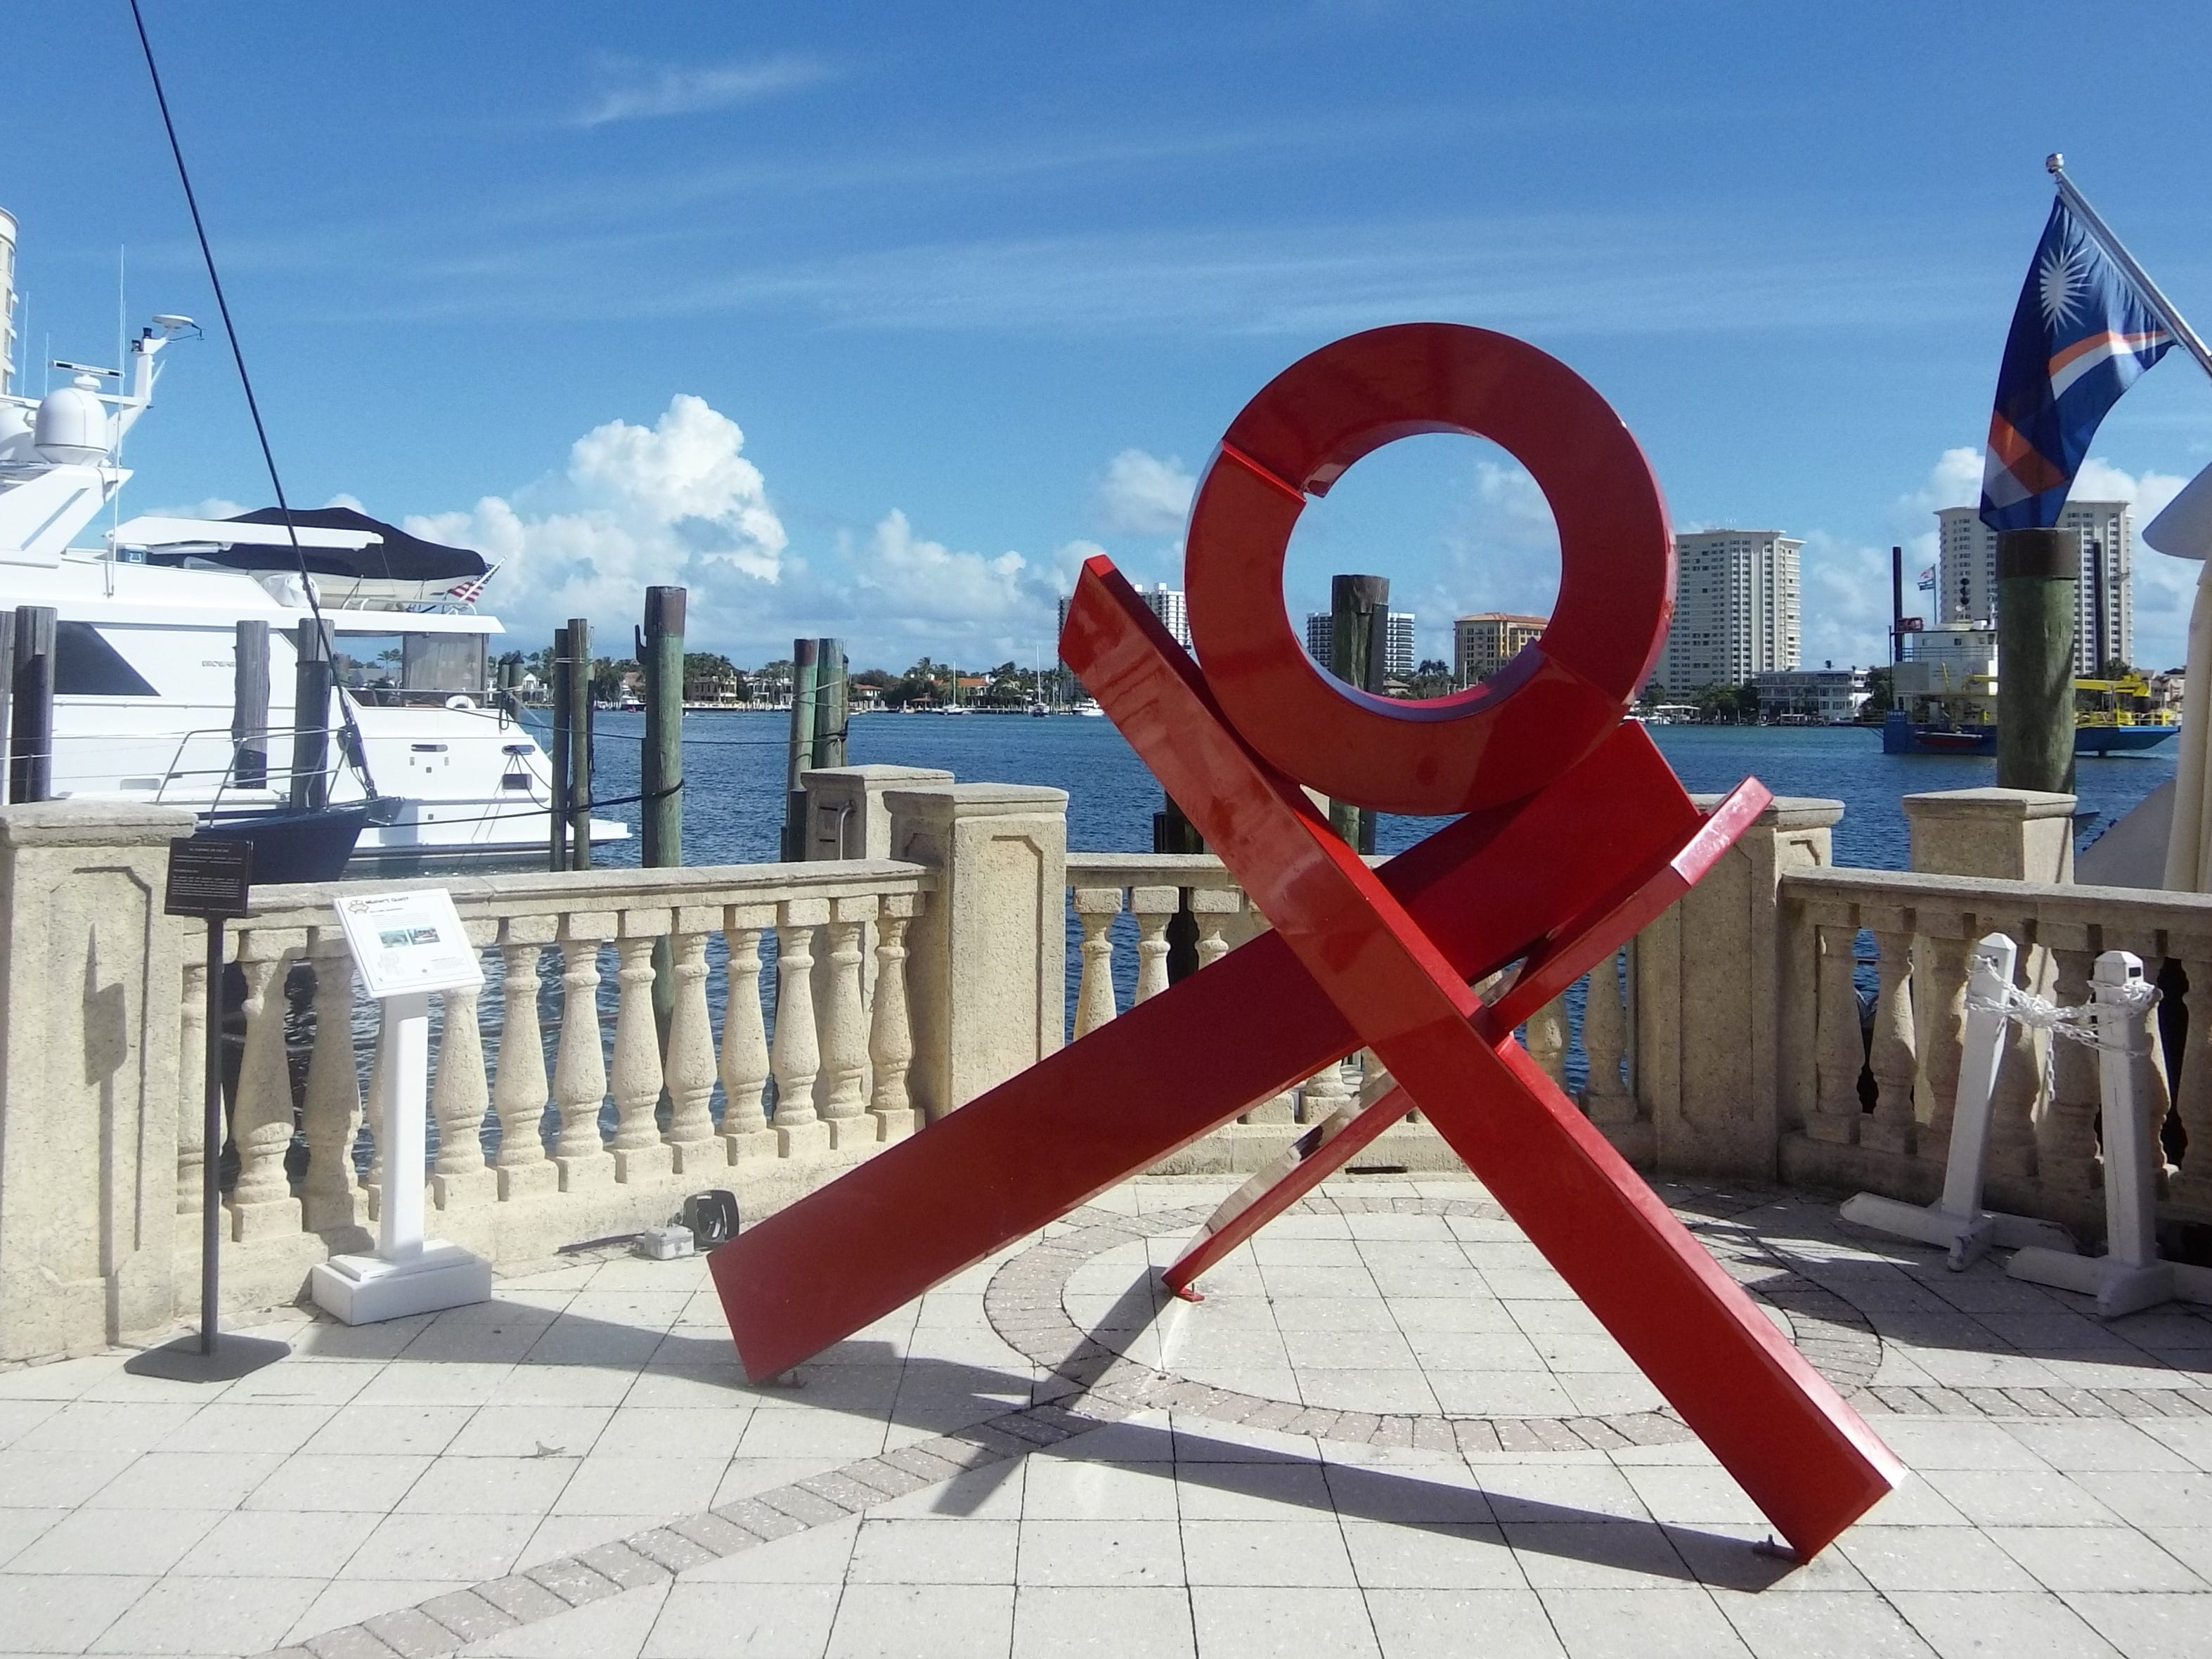 This sculpture, curated by Sponder Gallery, is found on the patio outside Palm Pavilion, overlooking Lake Boca Raton.